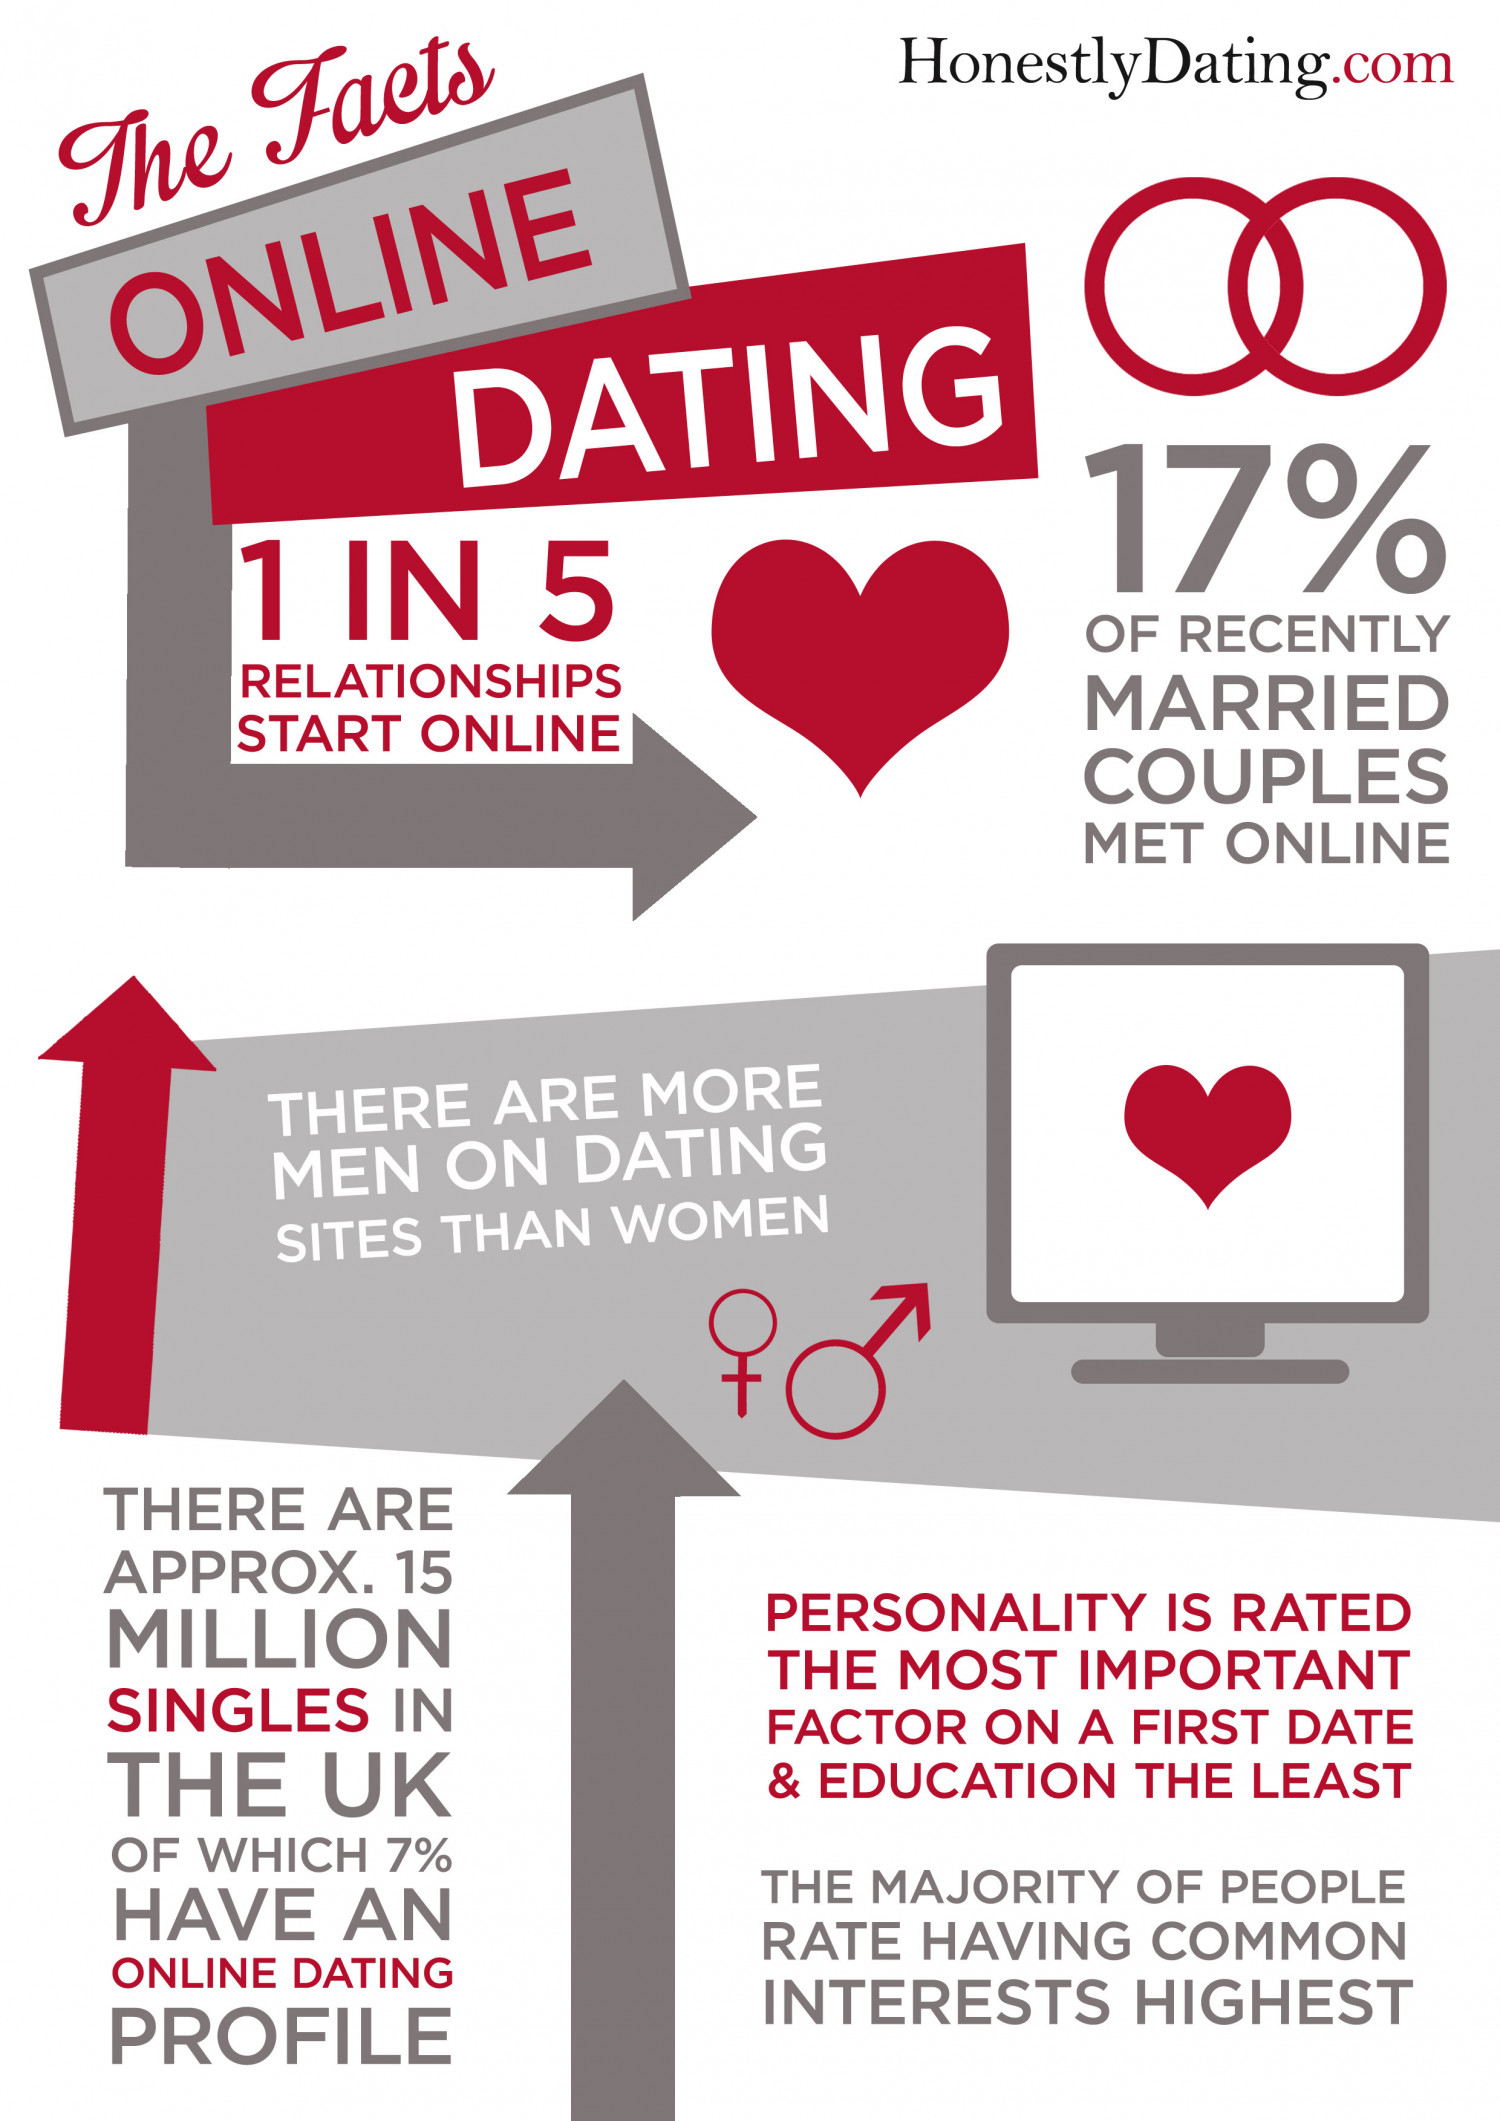 online dating dating See experts' picks for the 10 best dating sites of 2018 compare online dating reviews, stats, free trials, and more (as seen on cnn and foxnews.